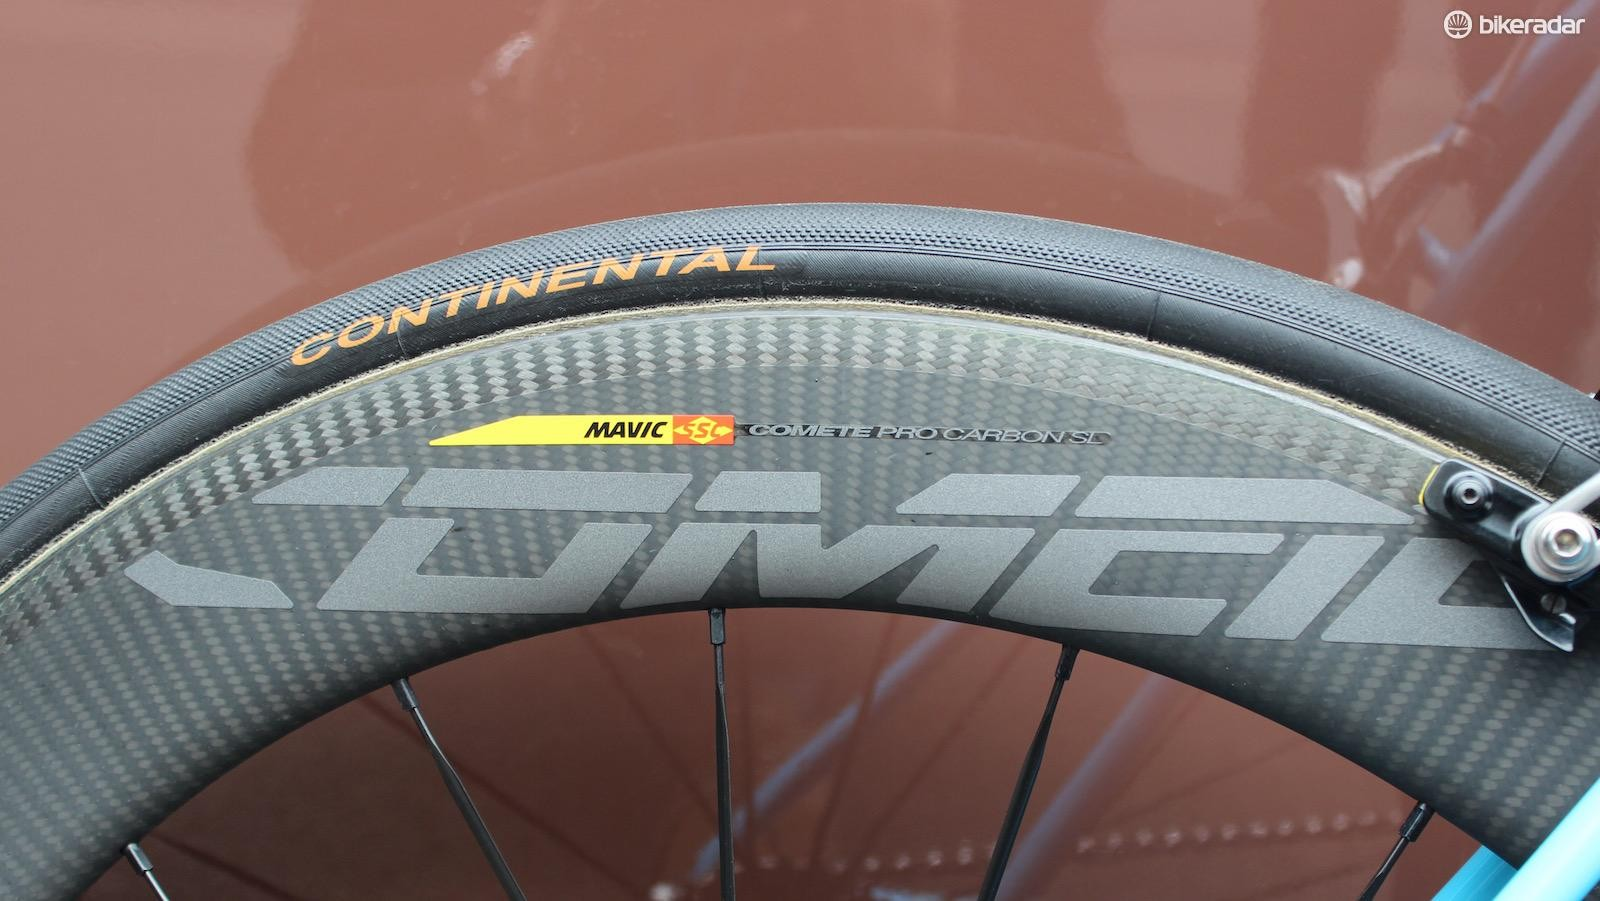 The AG2R La Mondiale were equipped with as yet unseen and unreleased Mavic Comete deep carbon rimmed wheels